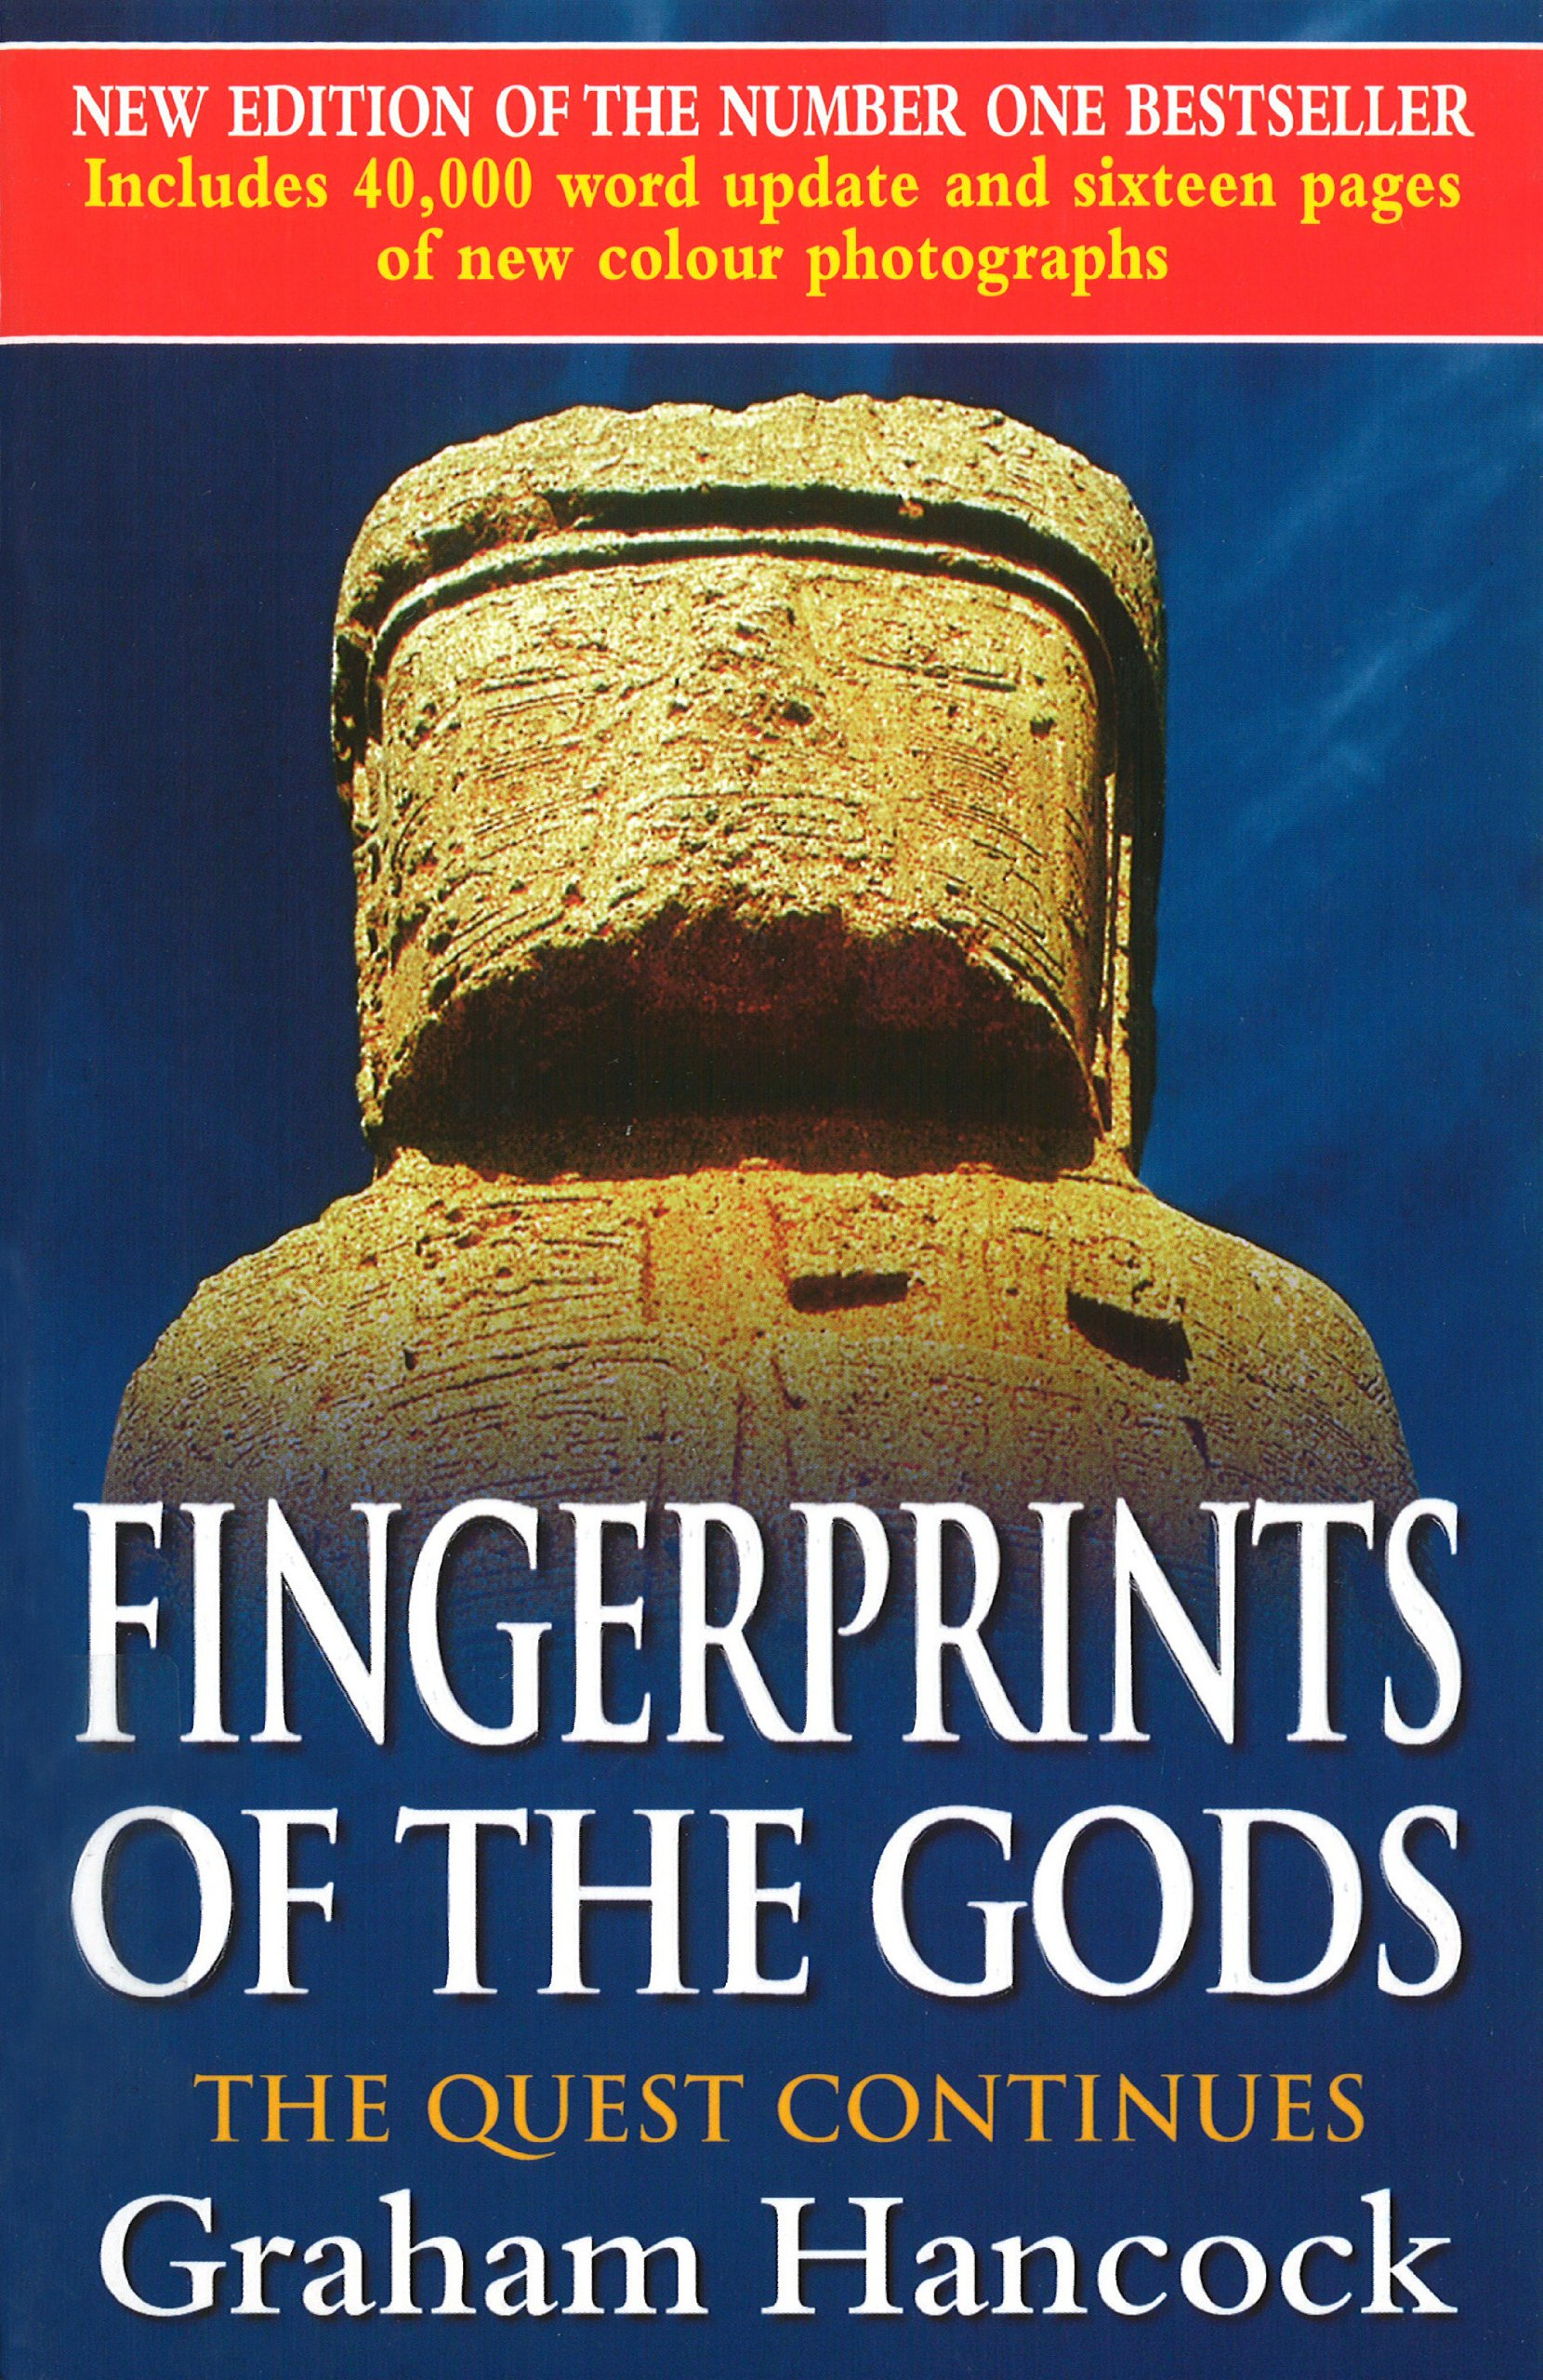 Buy Fingerprints Of The Gods (New Updated Edition) Book Online at Low  Prices in India | Fingerprints Of The Gods (New Updated Edition) Reviews &  Ratings ...